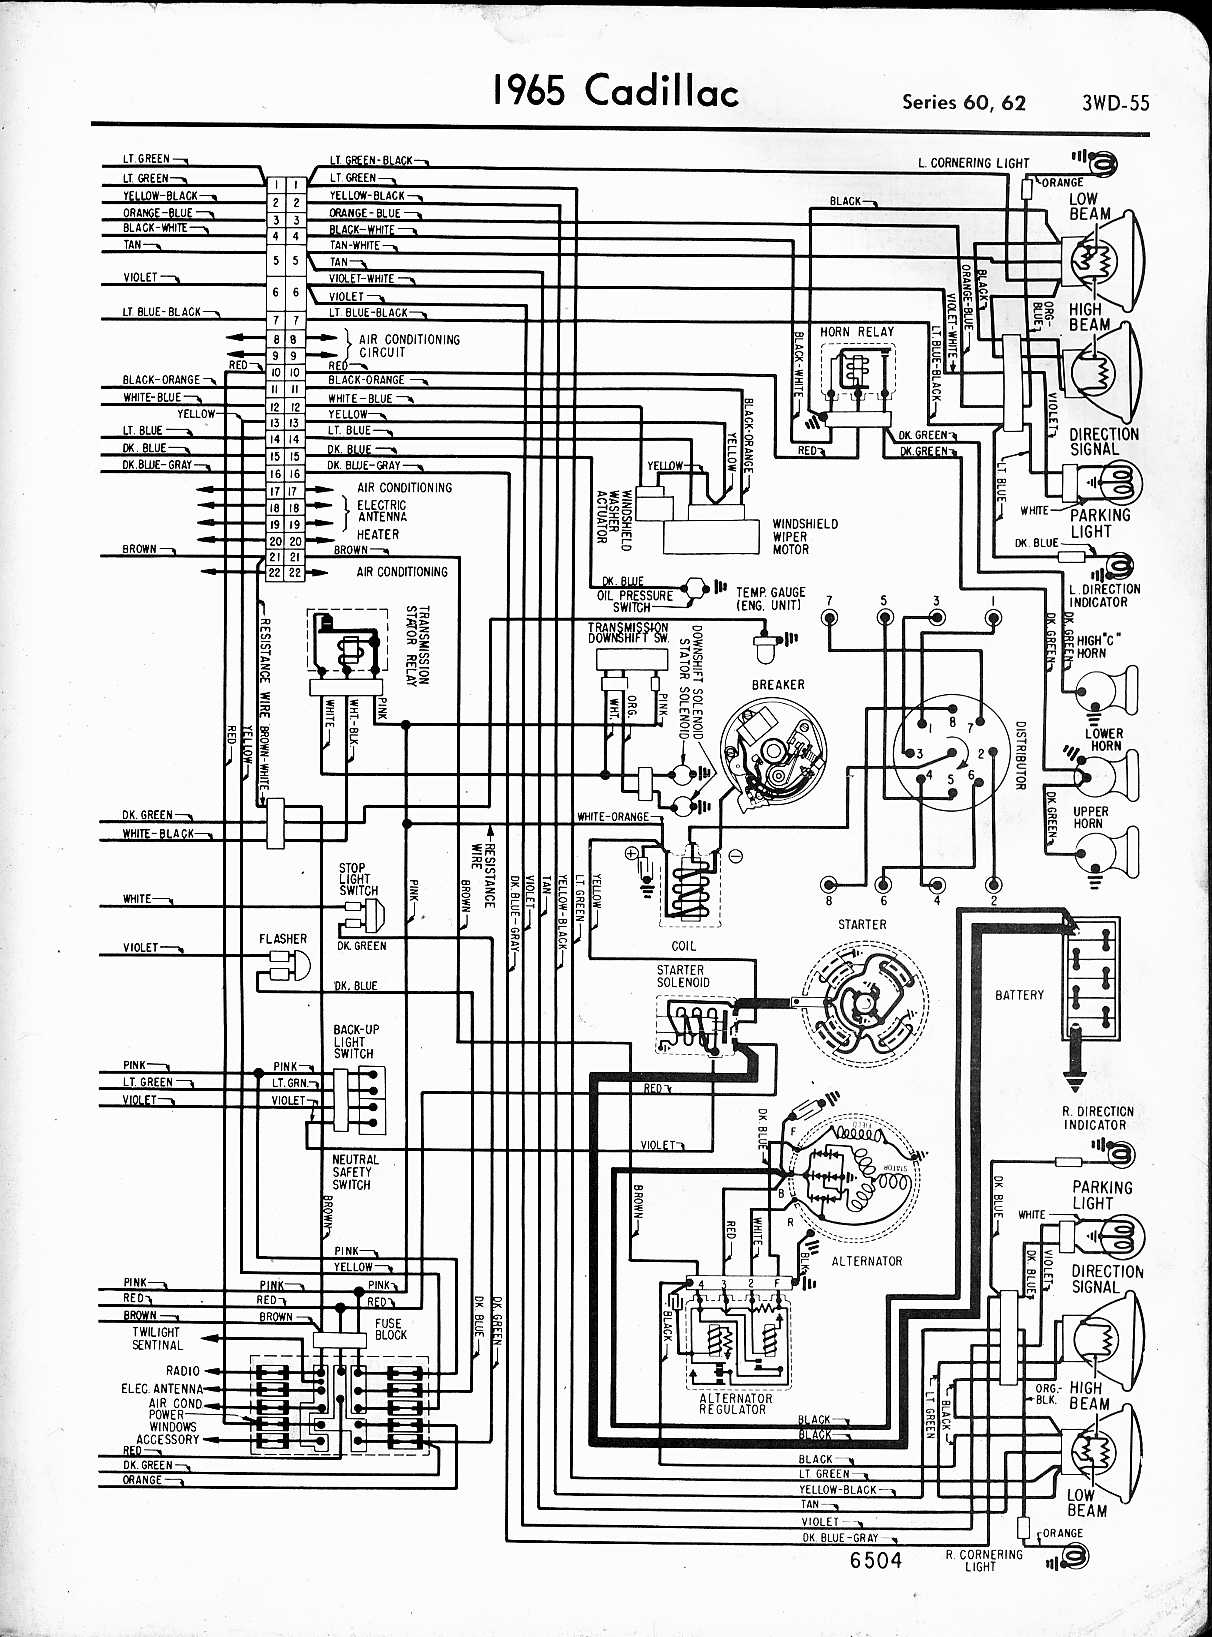 cadillac wiring diagrams: 1957-1965 1968 gto wiring diagram 1968 cadillac wiring diagram